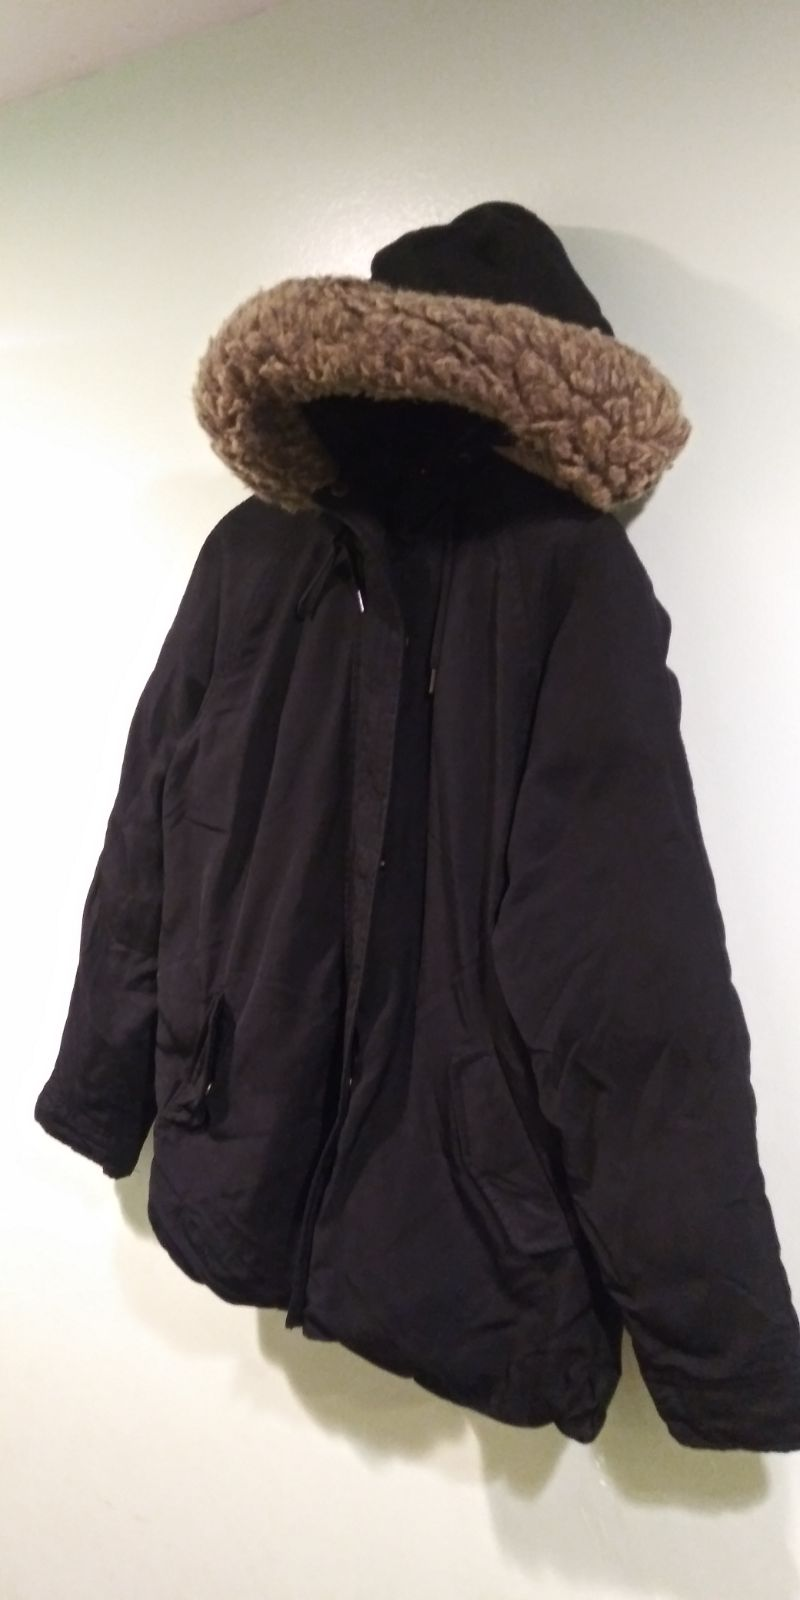 Old Navy coat for sale